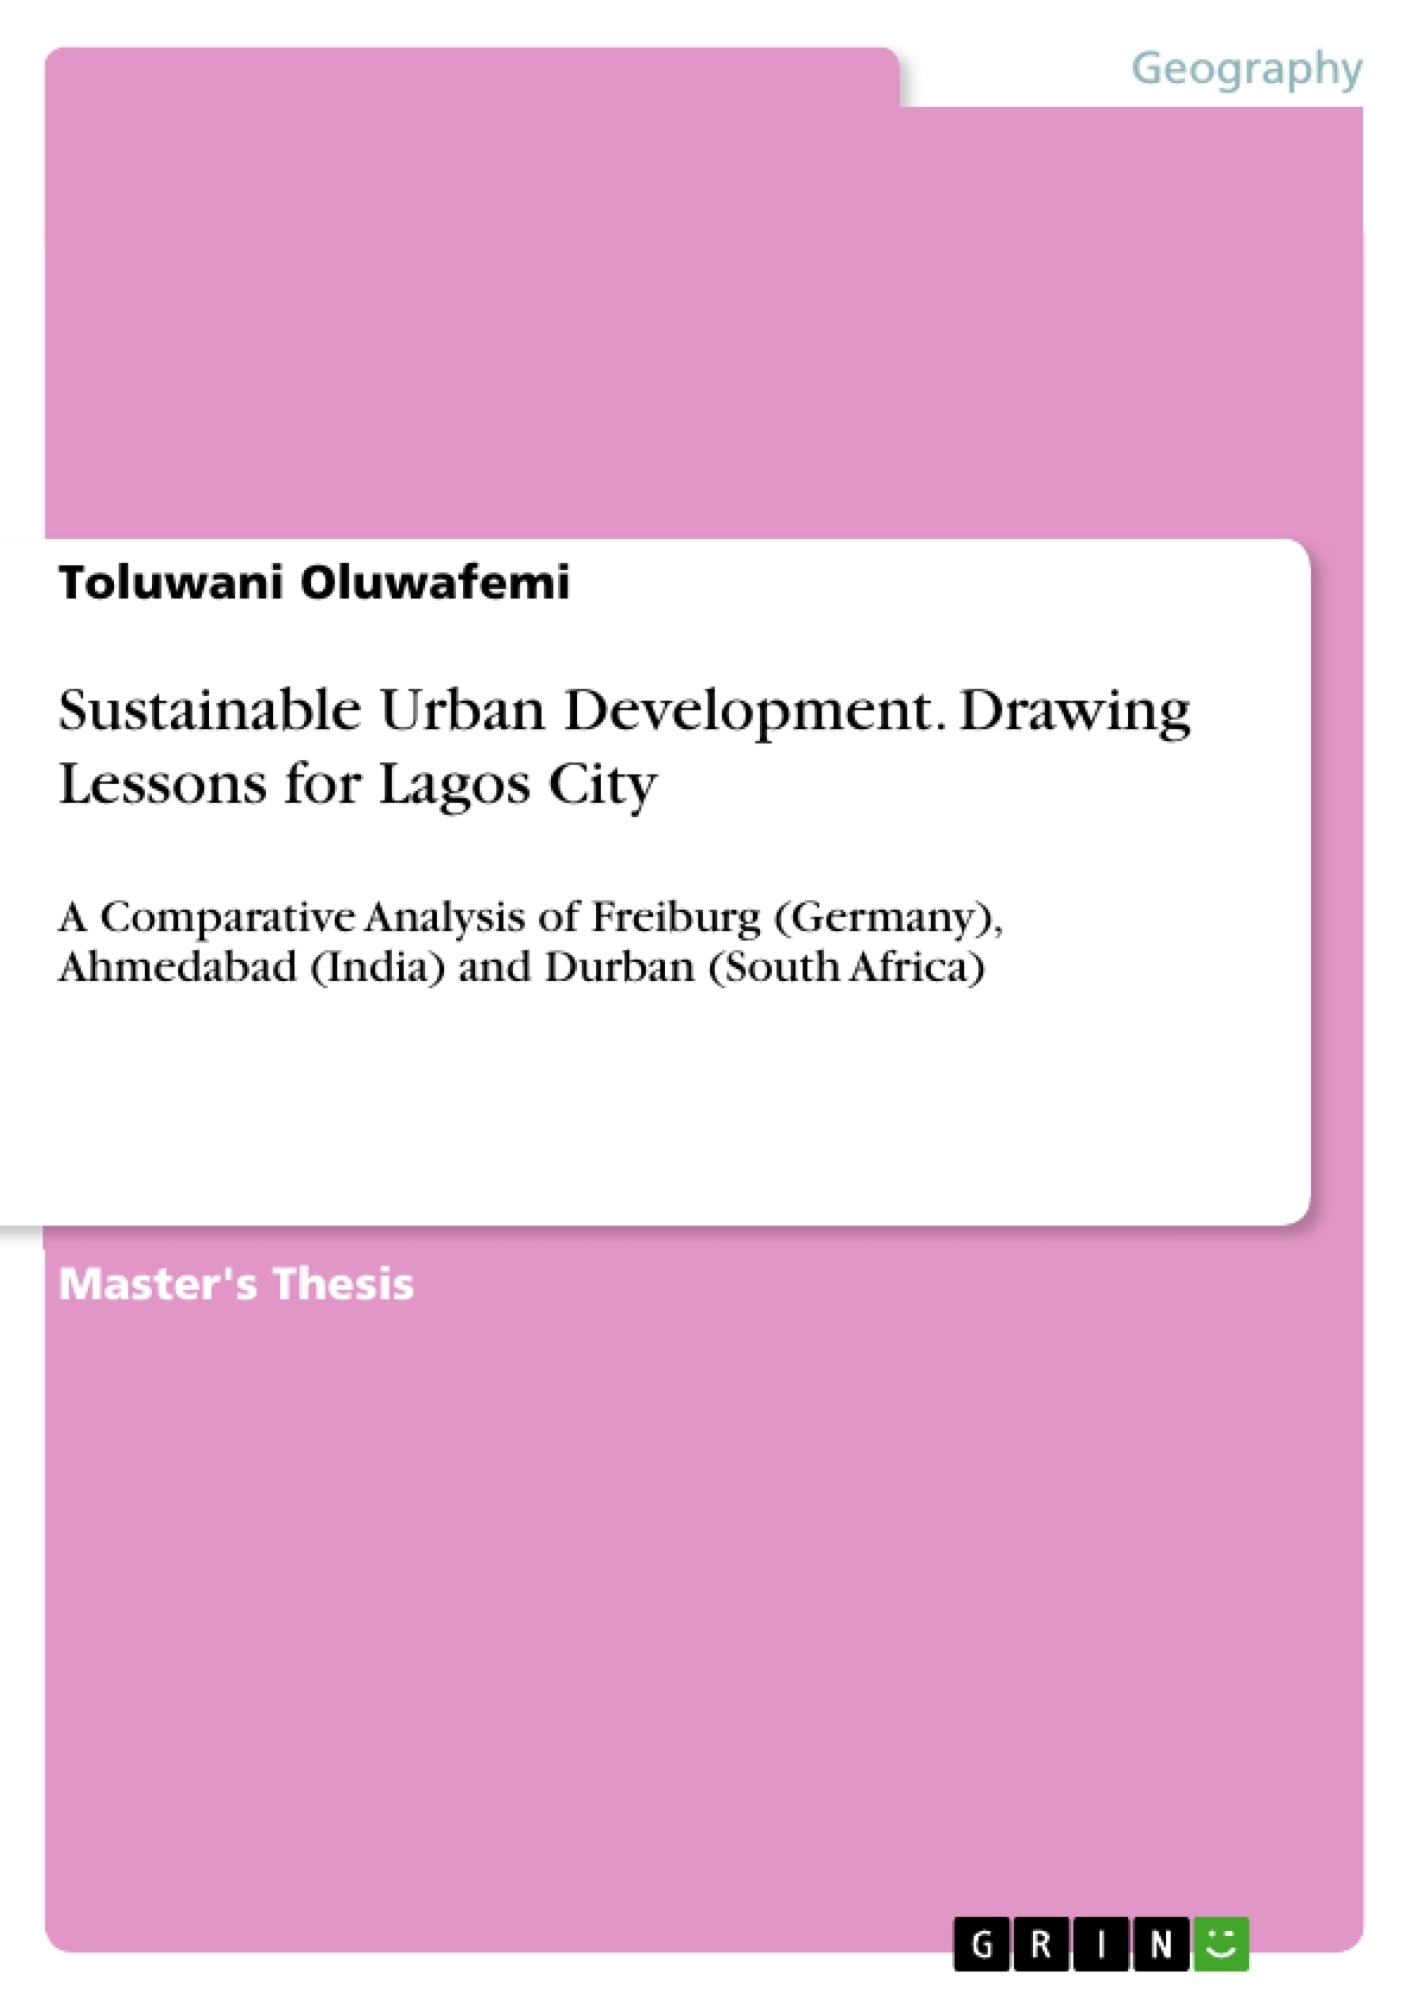 Title: Sustainable Urban Development. Drawing Lessons for Lagos City